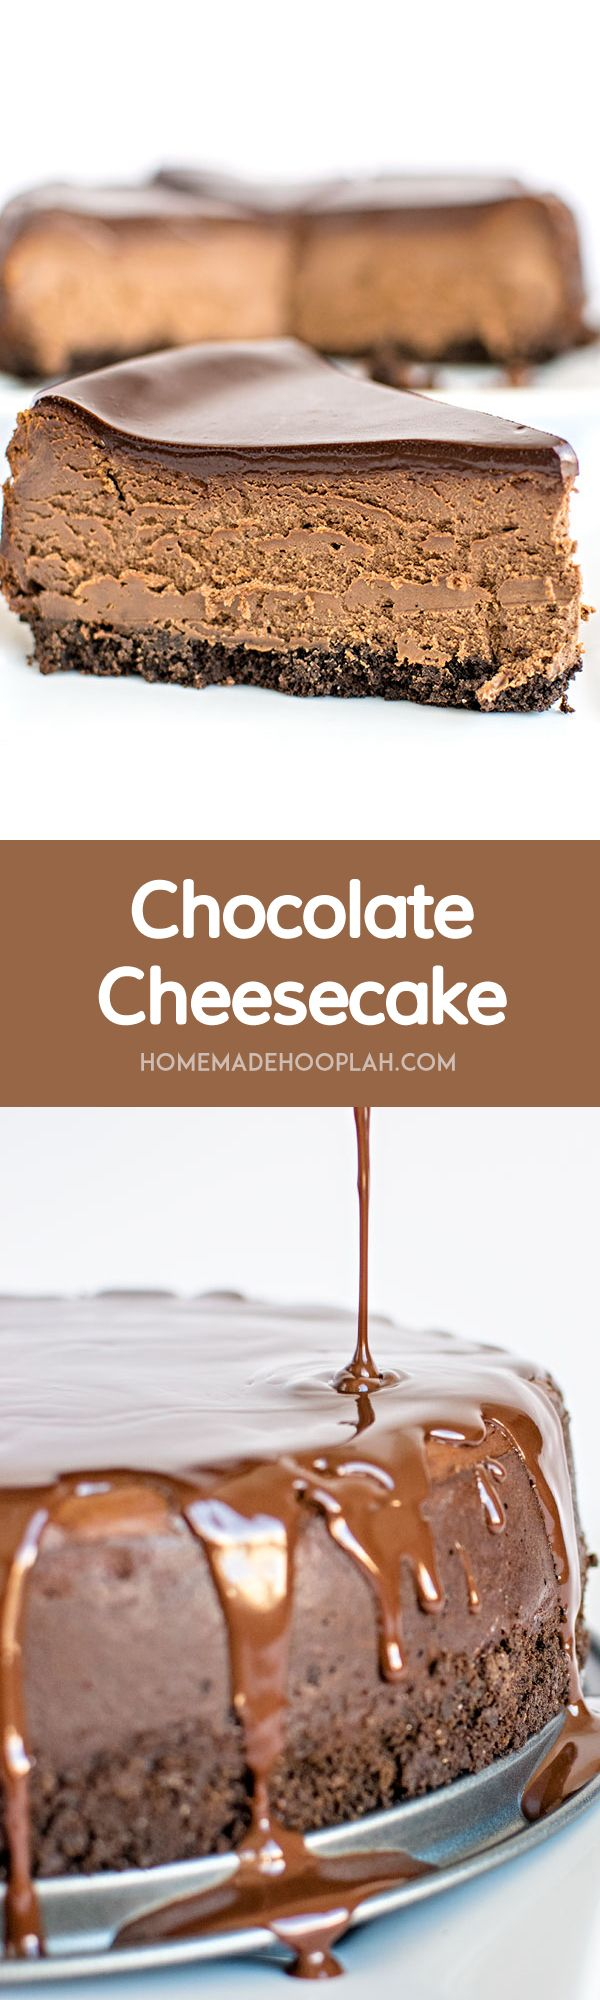 Chocolate Cheesecake! The traditional chocolate cheesecake, complete with chocolate ganache topping. | HomemadeHooplah.com